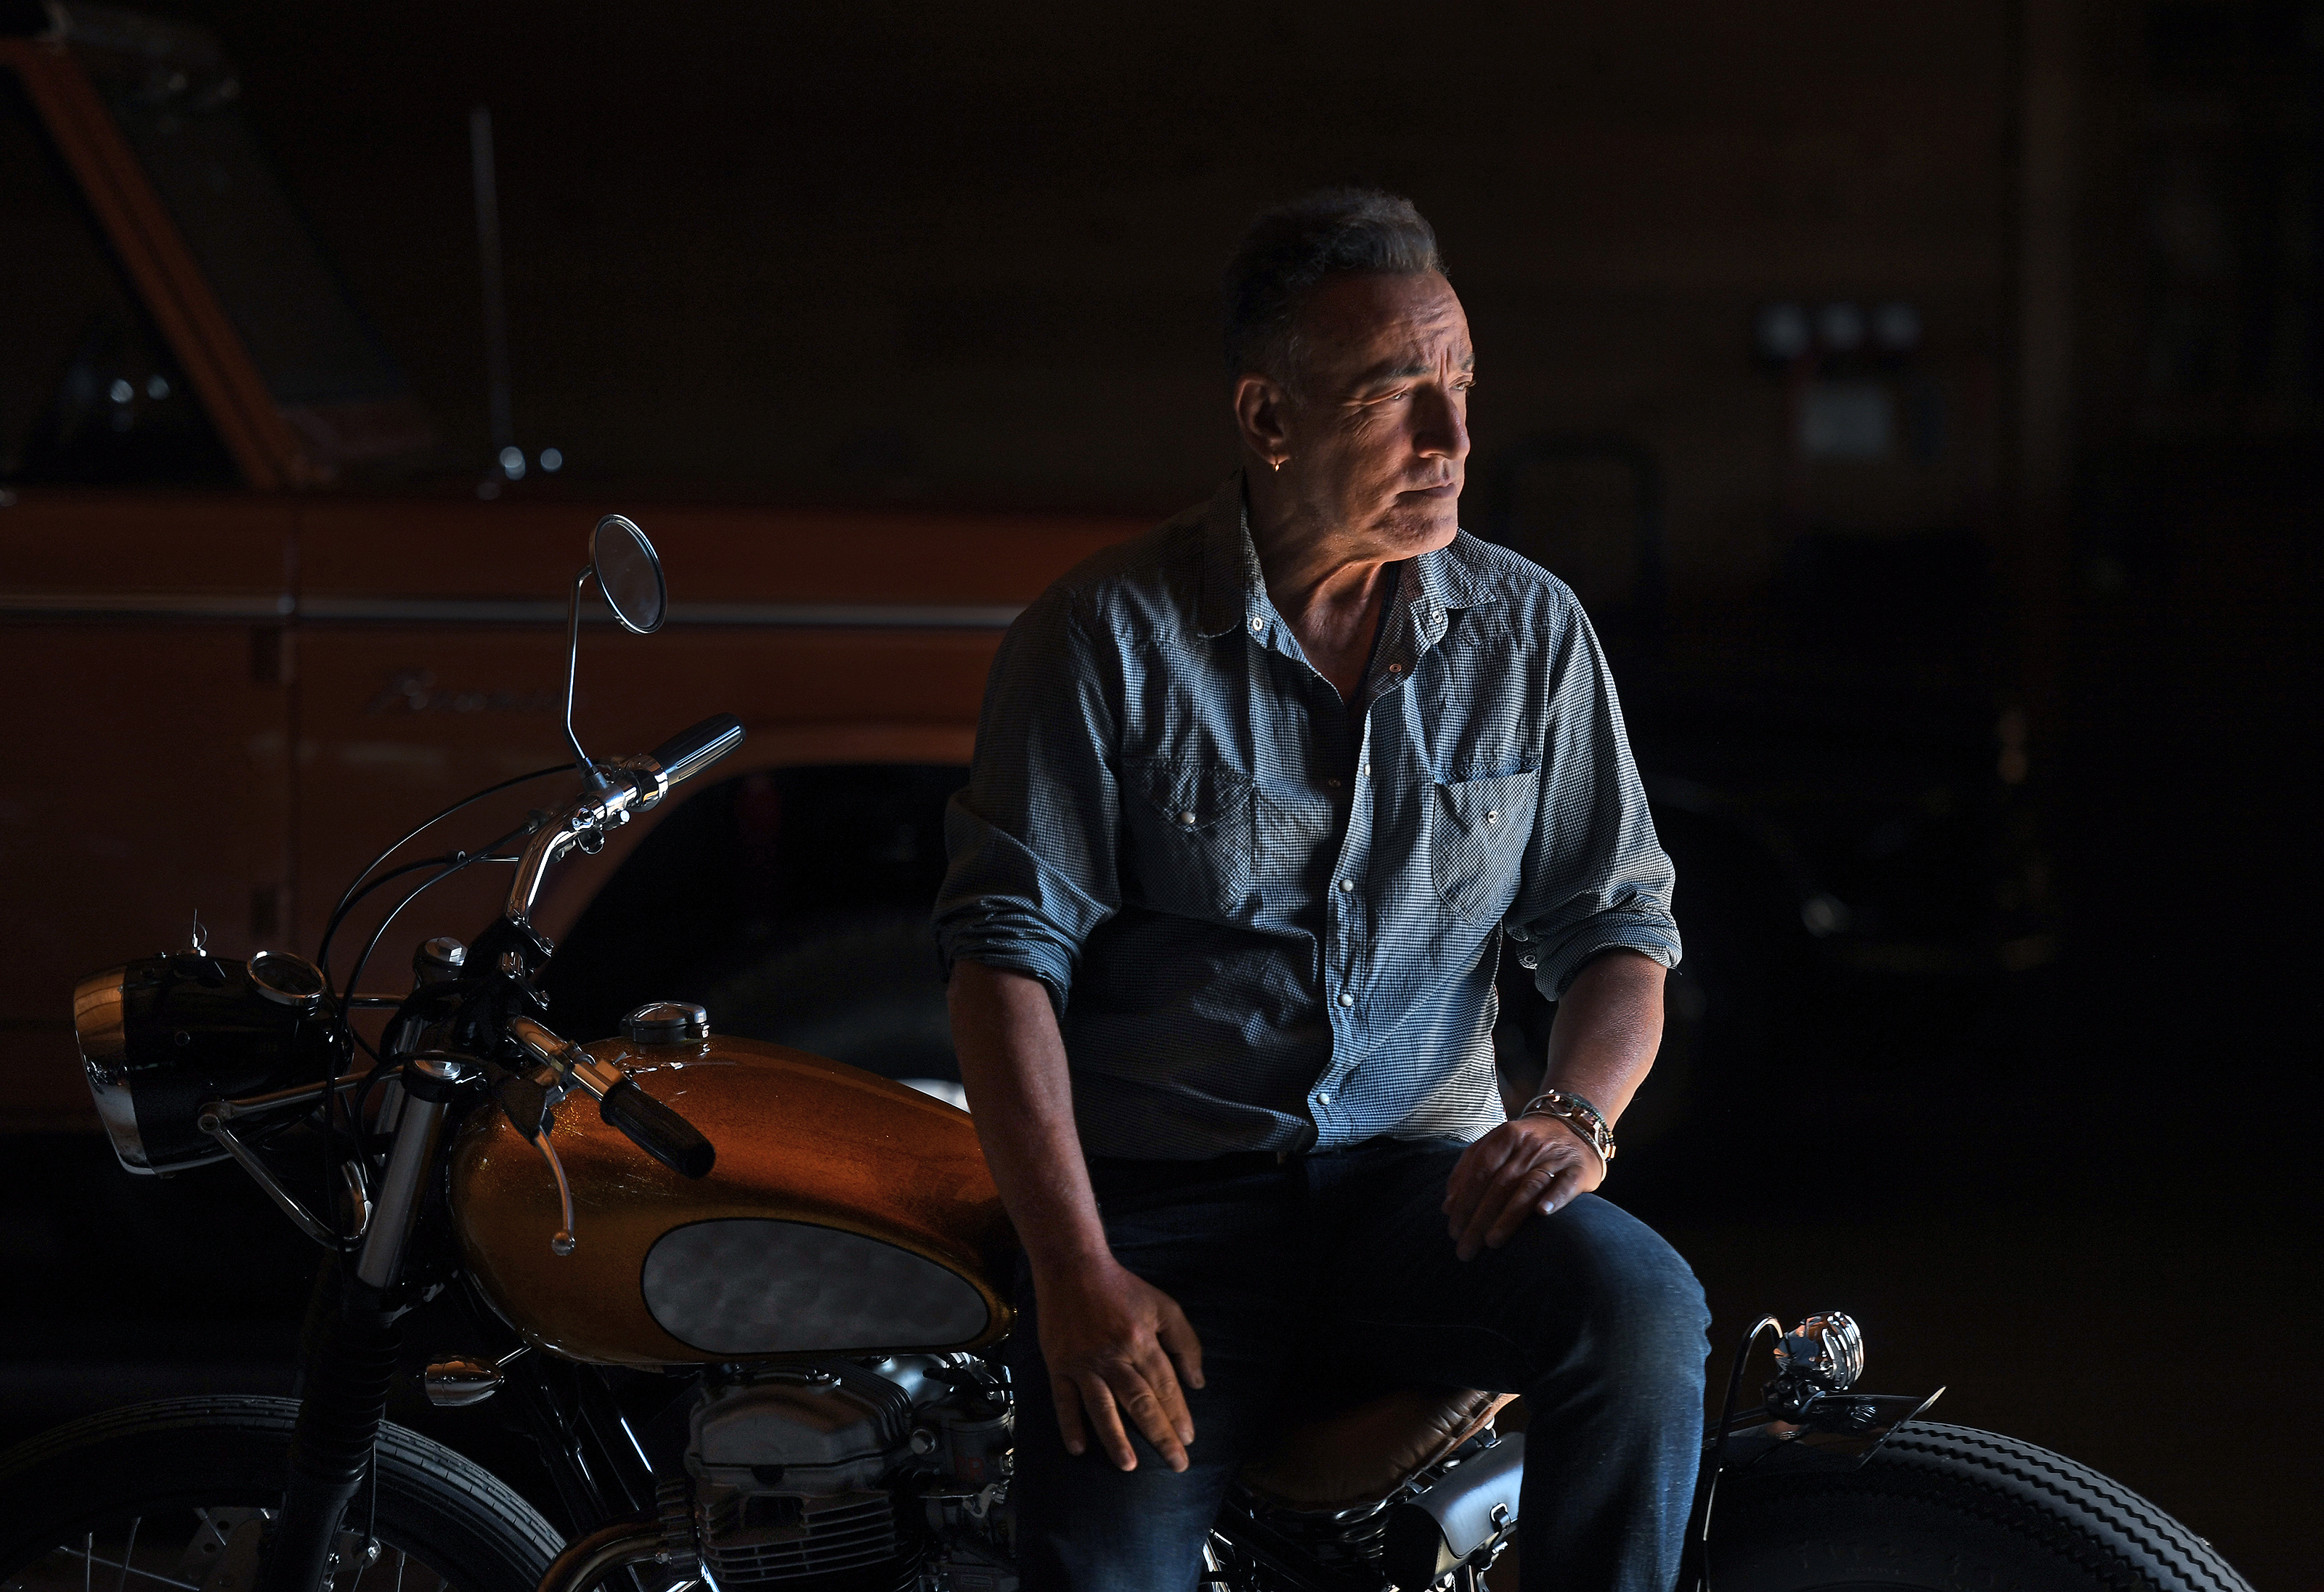 Bruce Springsteen at his home in Monmouth County, N.J., in September. Springsteen co-directed